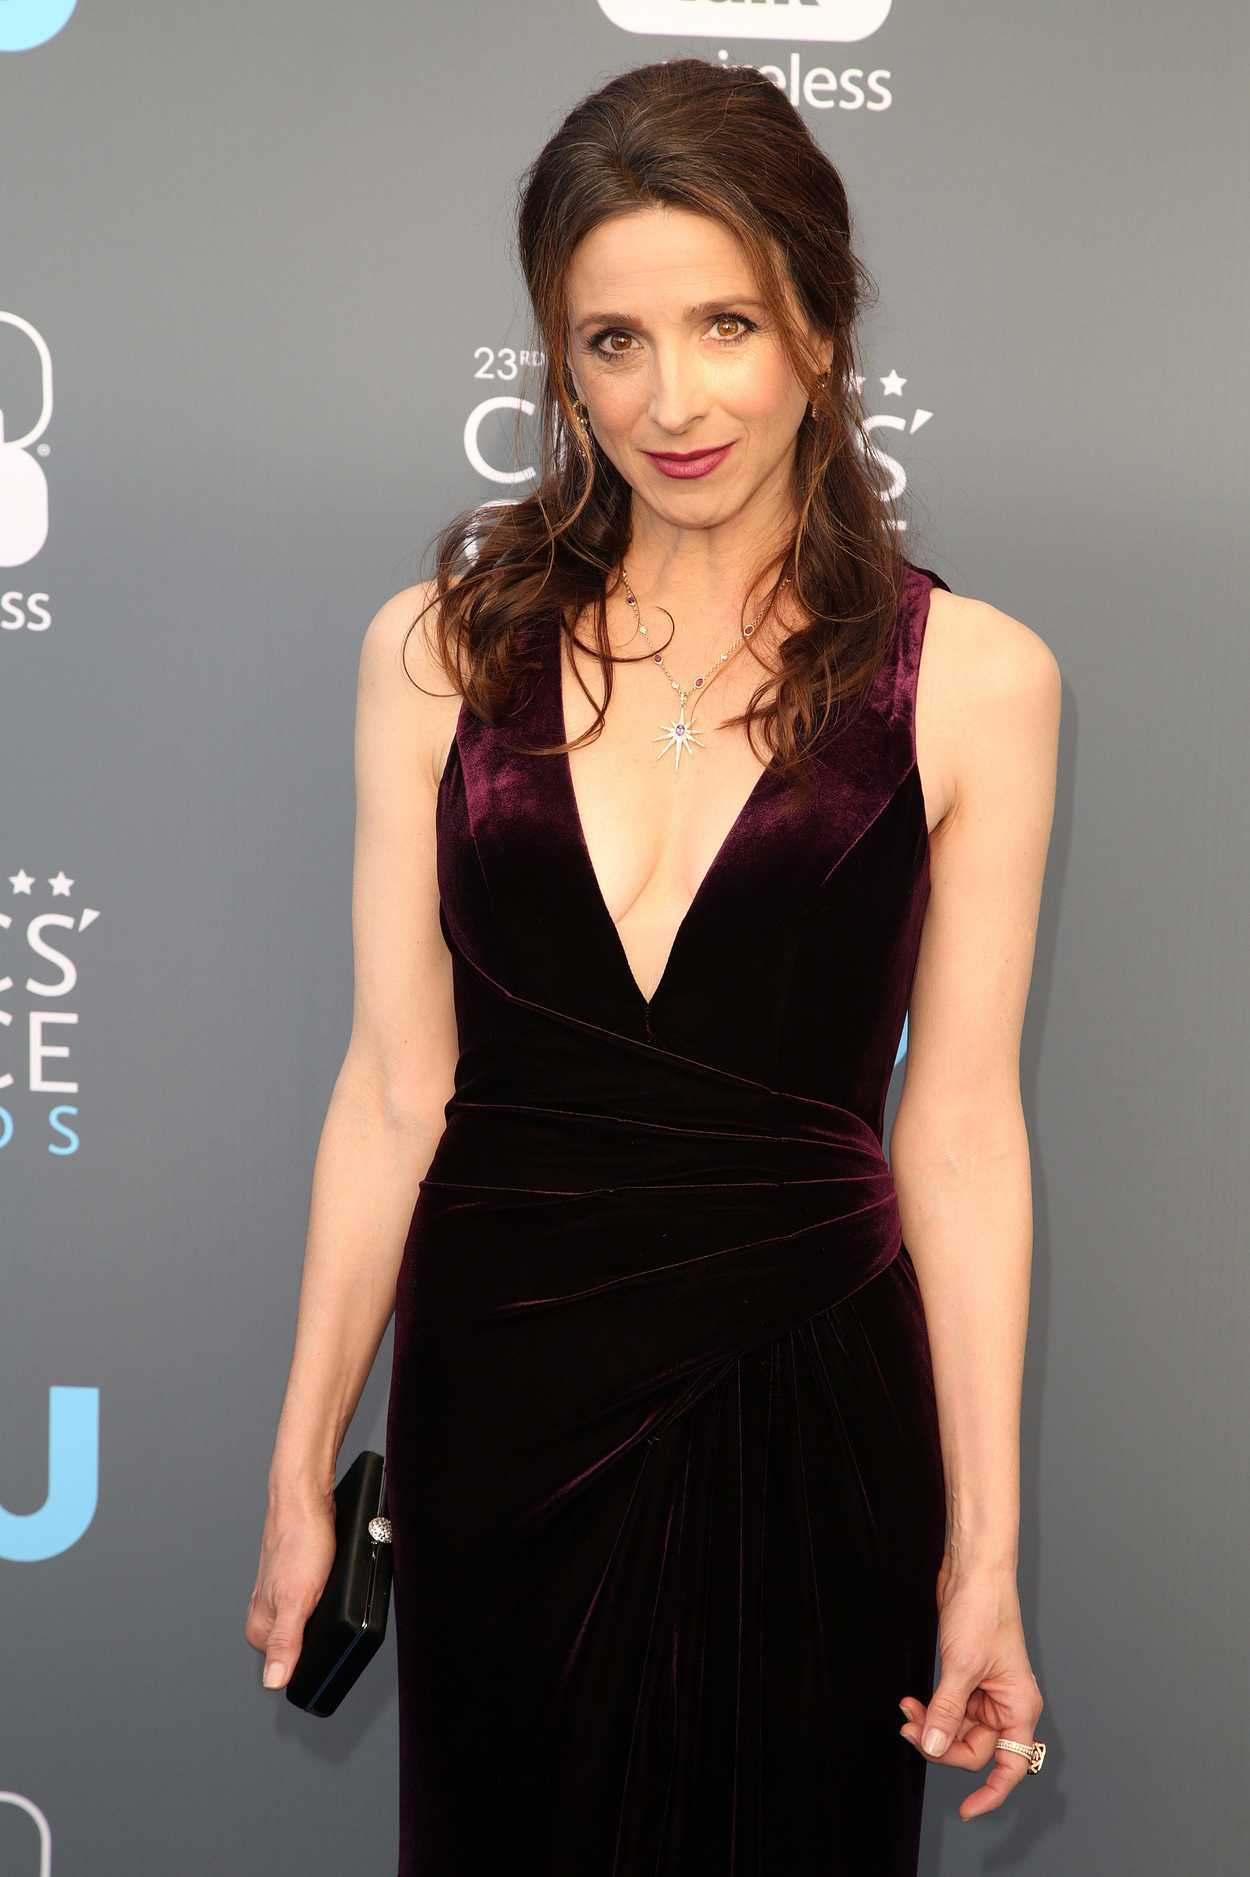 Marin Hinkle At The 23rd Annual Critics Choice Awards In